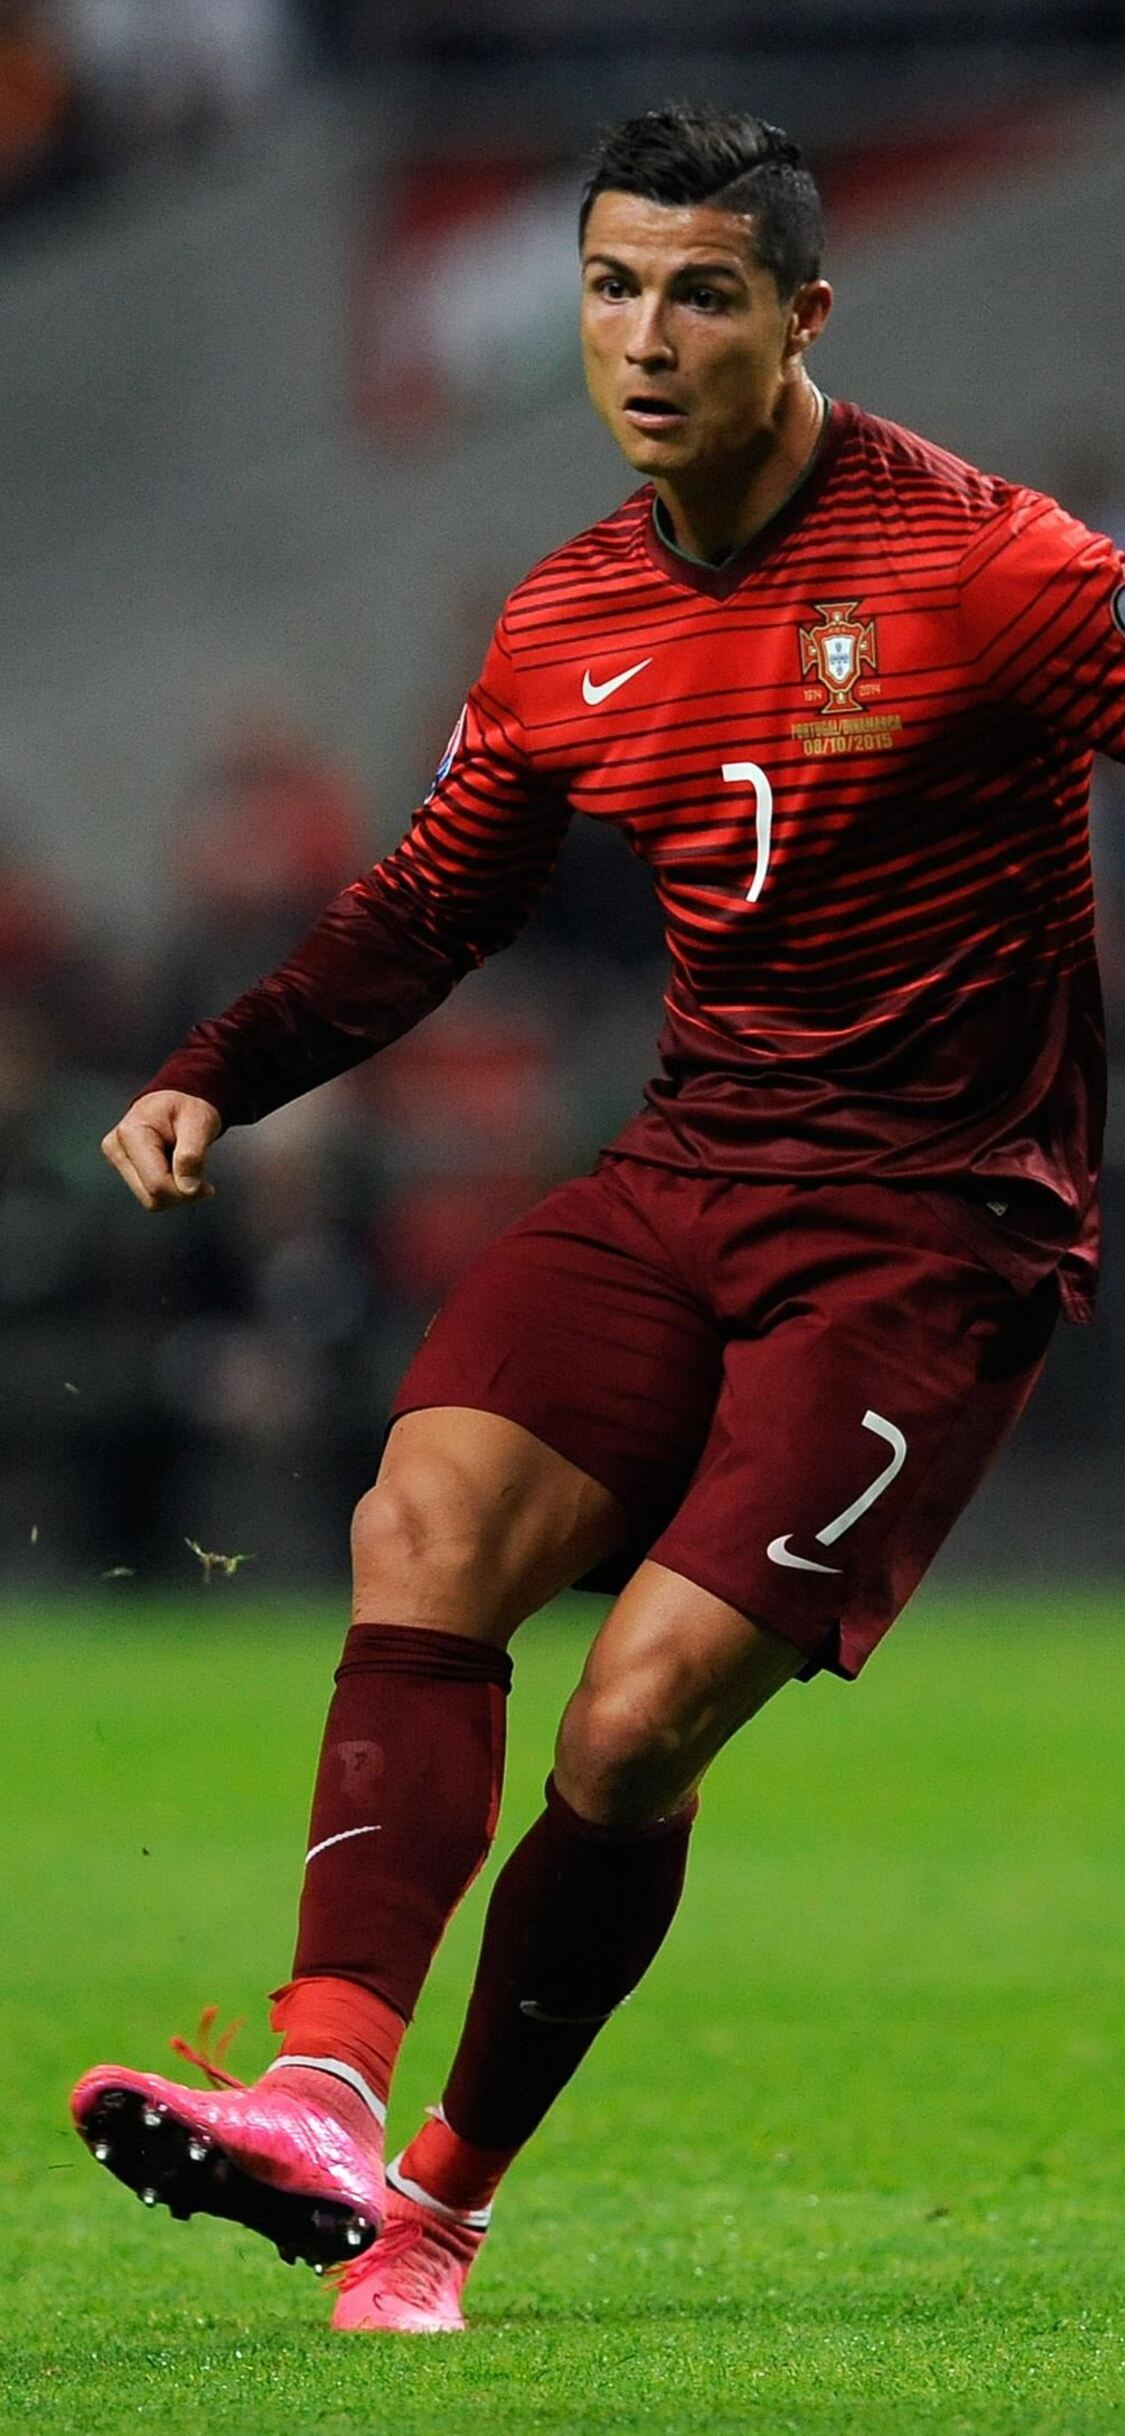 1125x2436 Cristiano Ronaldo Iphone Xs Iphone 10 Iphone X Hd 4k Wallpapers Images Backgrounds Photos And Pictures